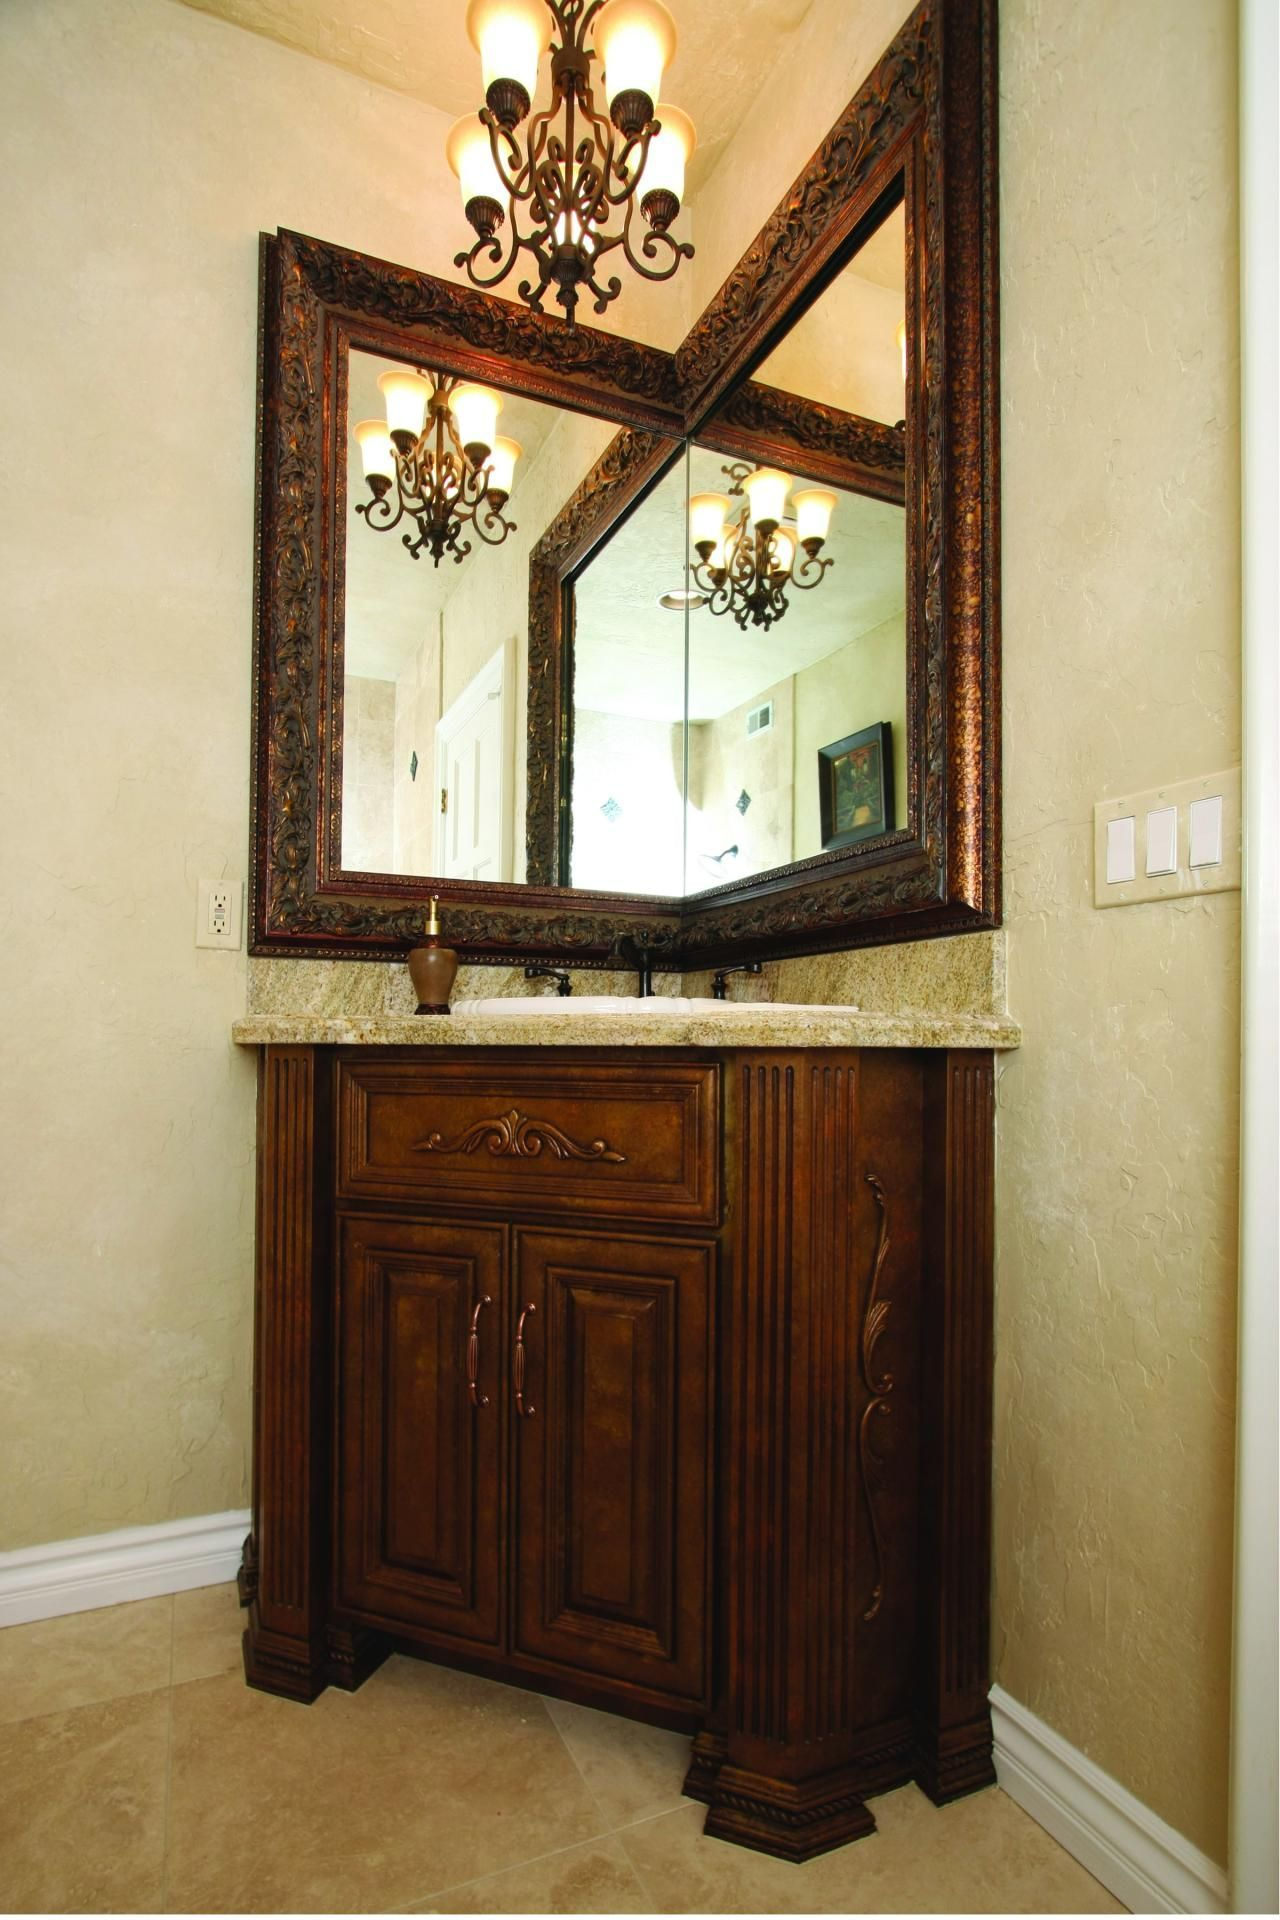 Corner Bathroom Medicine Cabinet Ideas Corner Bathroom Mirror Corner Bathroom Vanity Corner Mirror